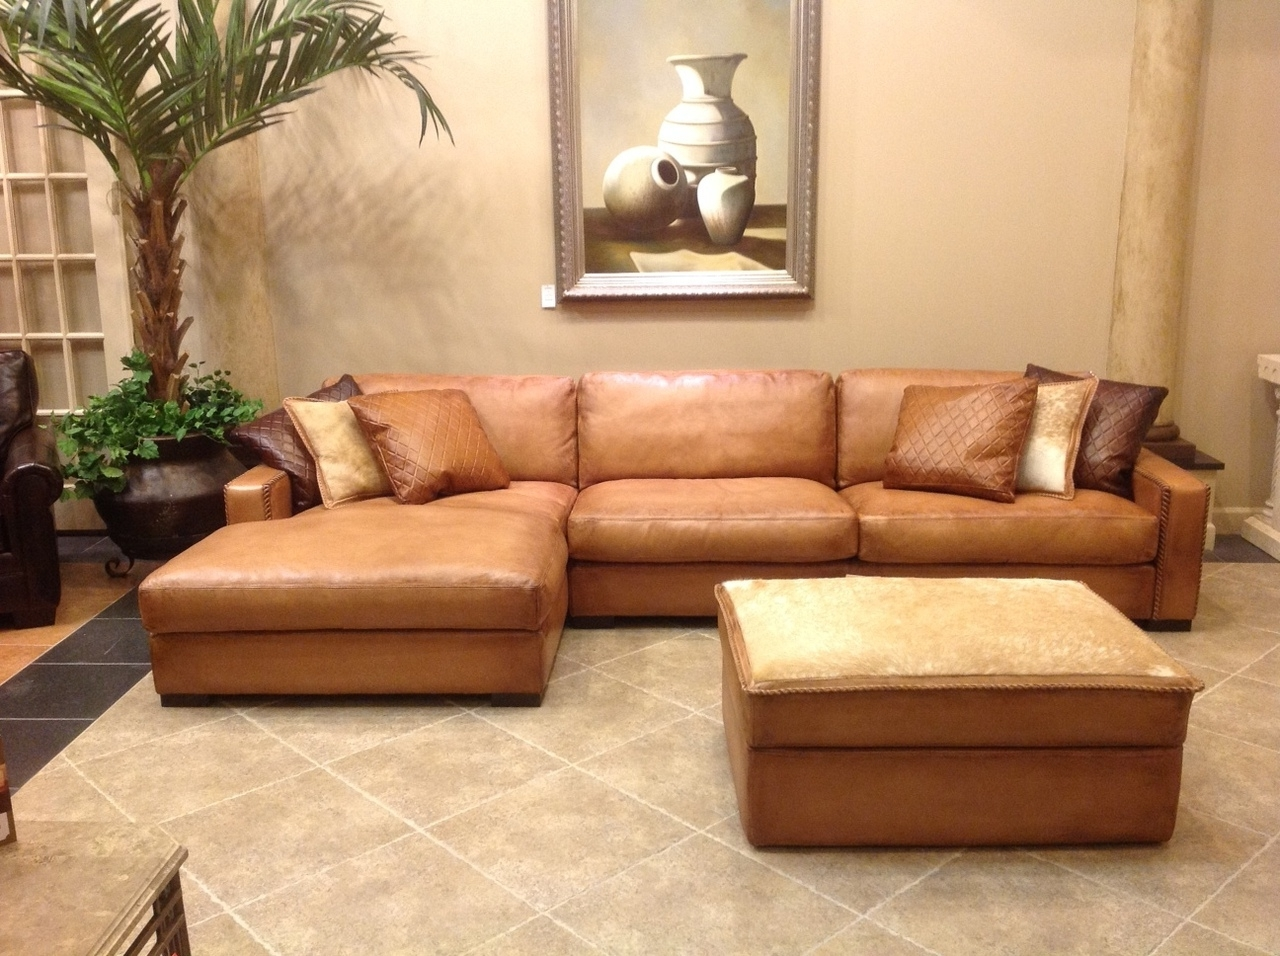 Furniture: Comfortable Deep Seat Sectional For Your Living Room With Famous Leather Chaise Sectionals (View 10 of 15)